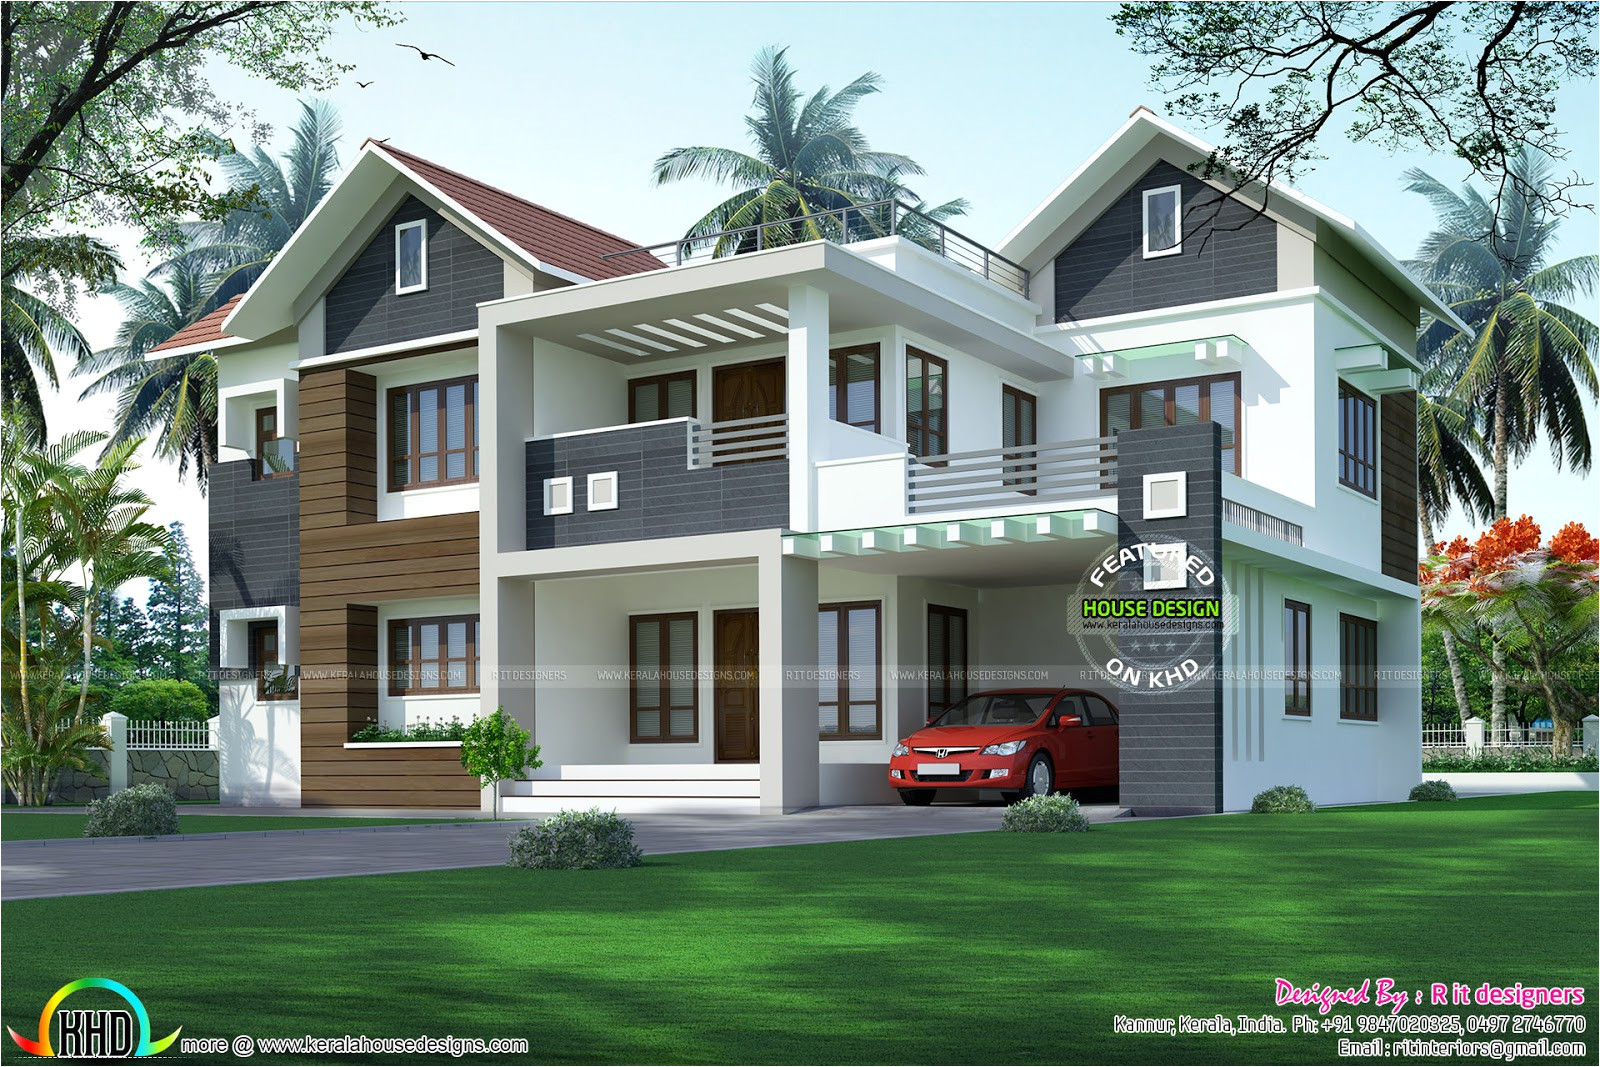 Home Design Plans with Photos In Kerala January 2017 Kerala Home Design and Floor Plans